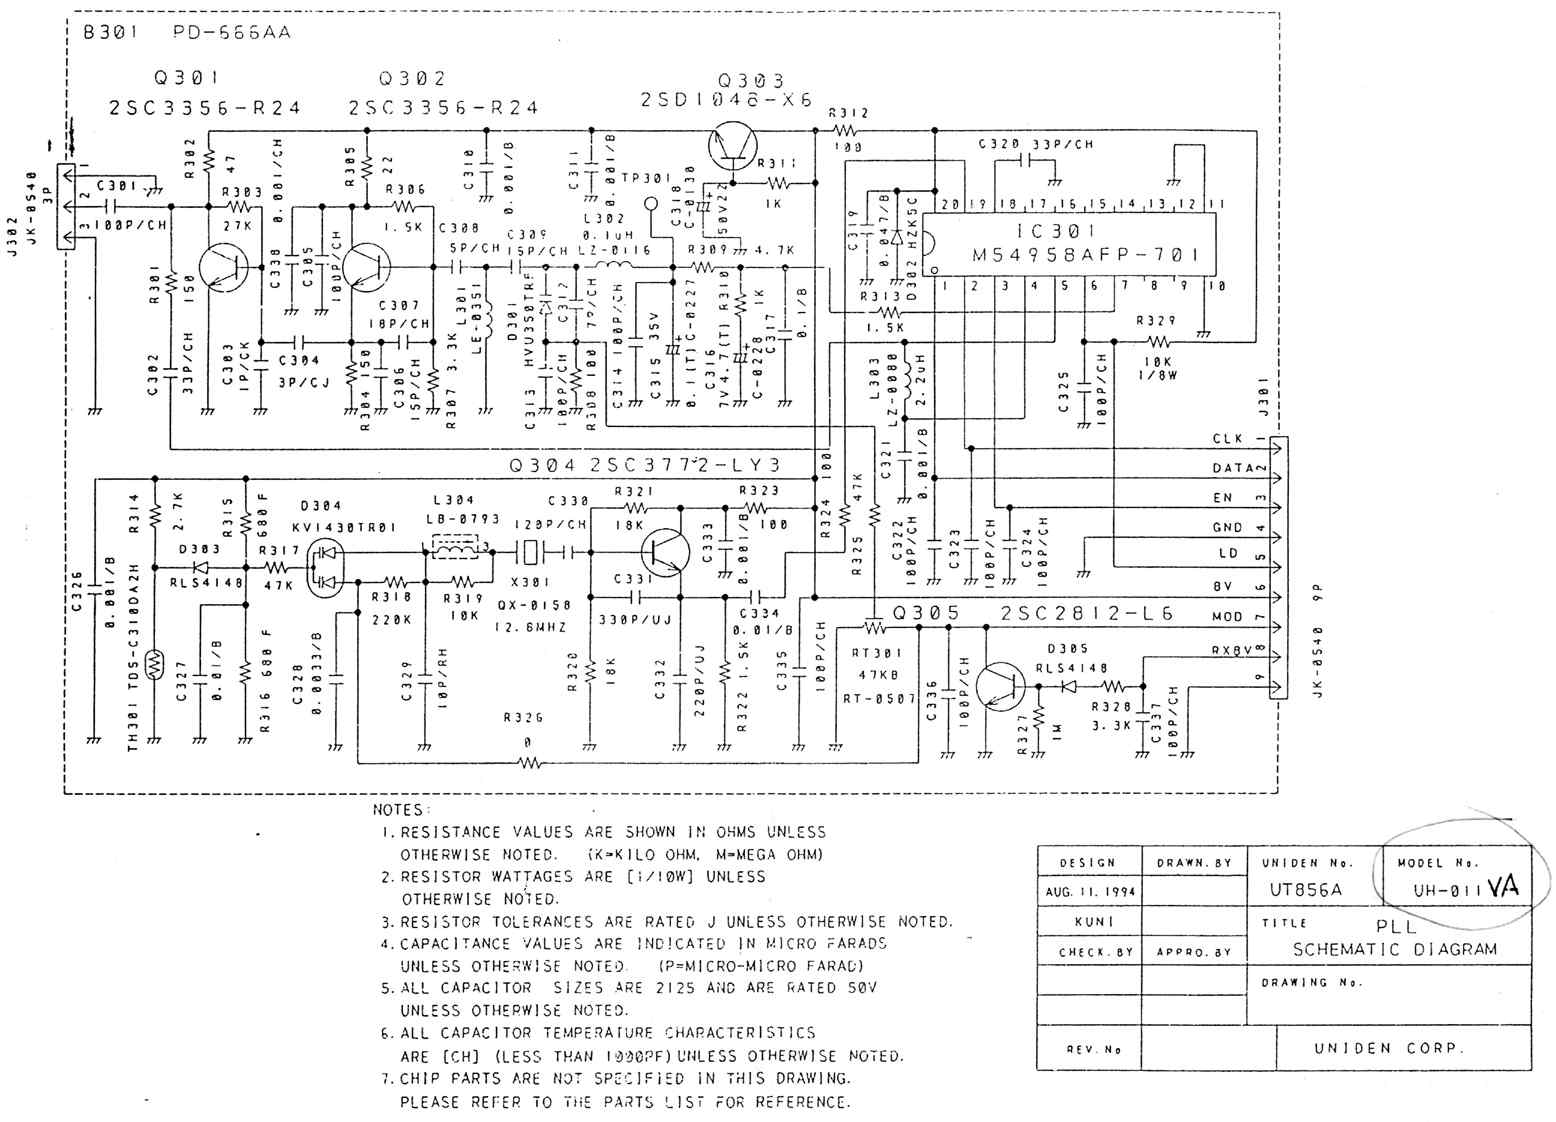 Lovely Uniden Mic Wiring Diagram Images - Electrical Circuit Diagram ...